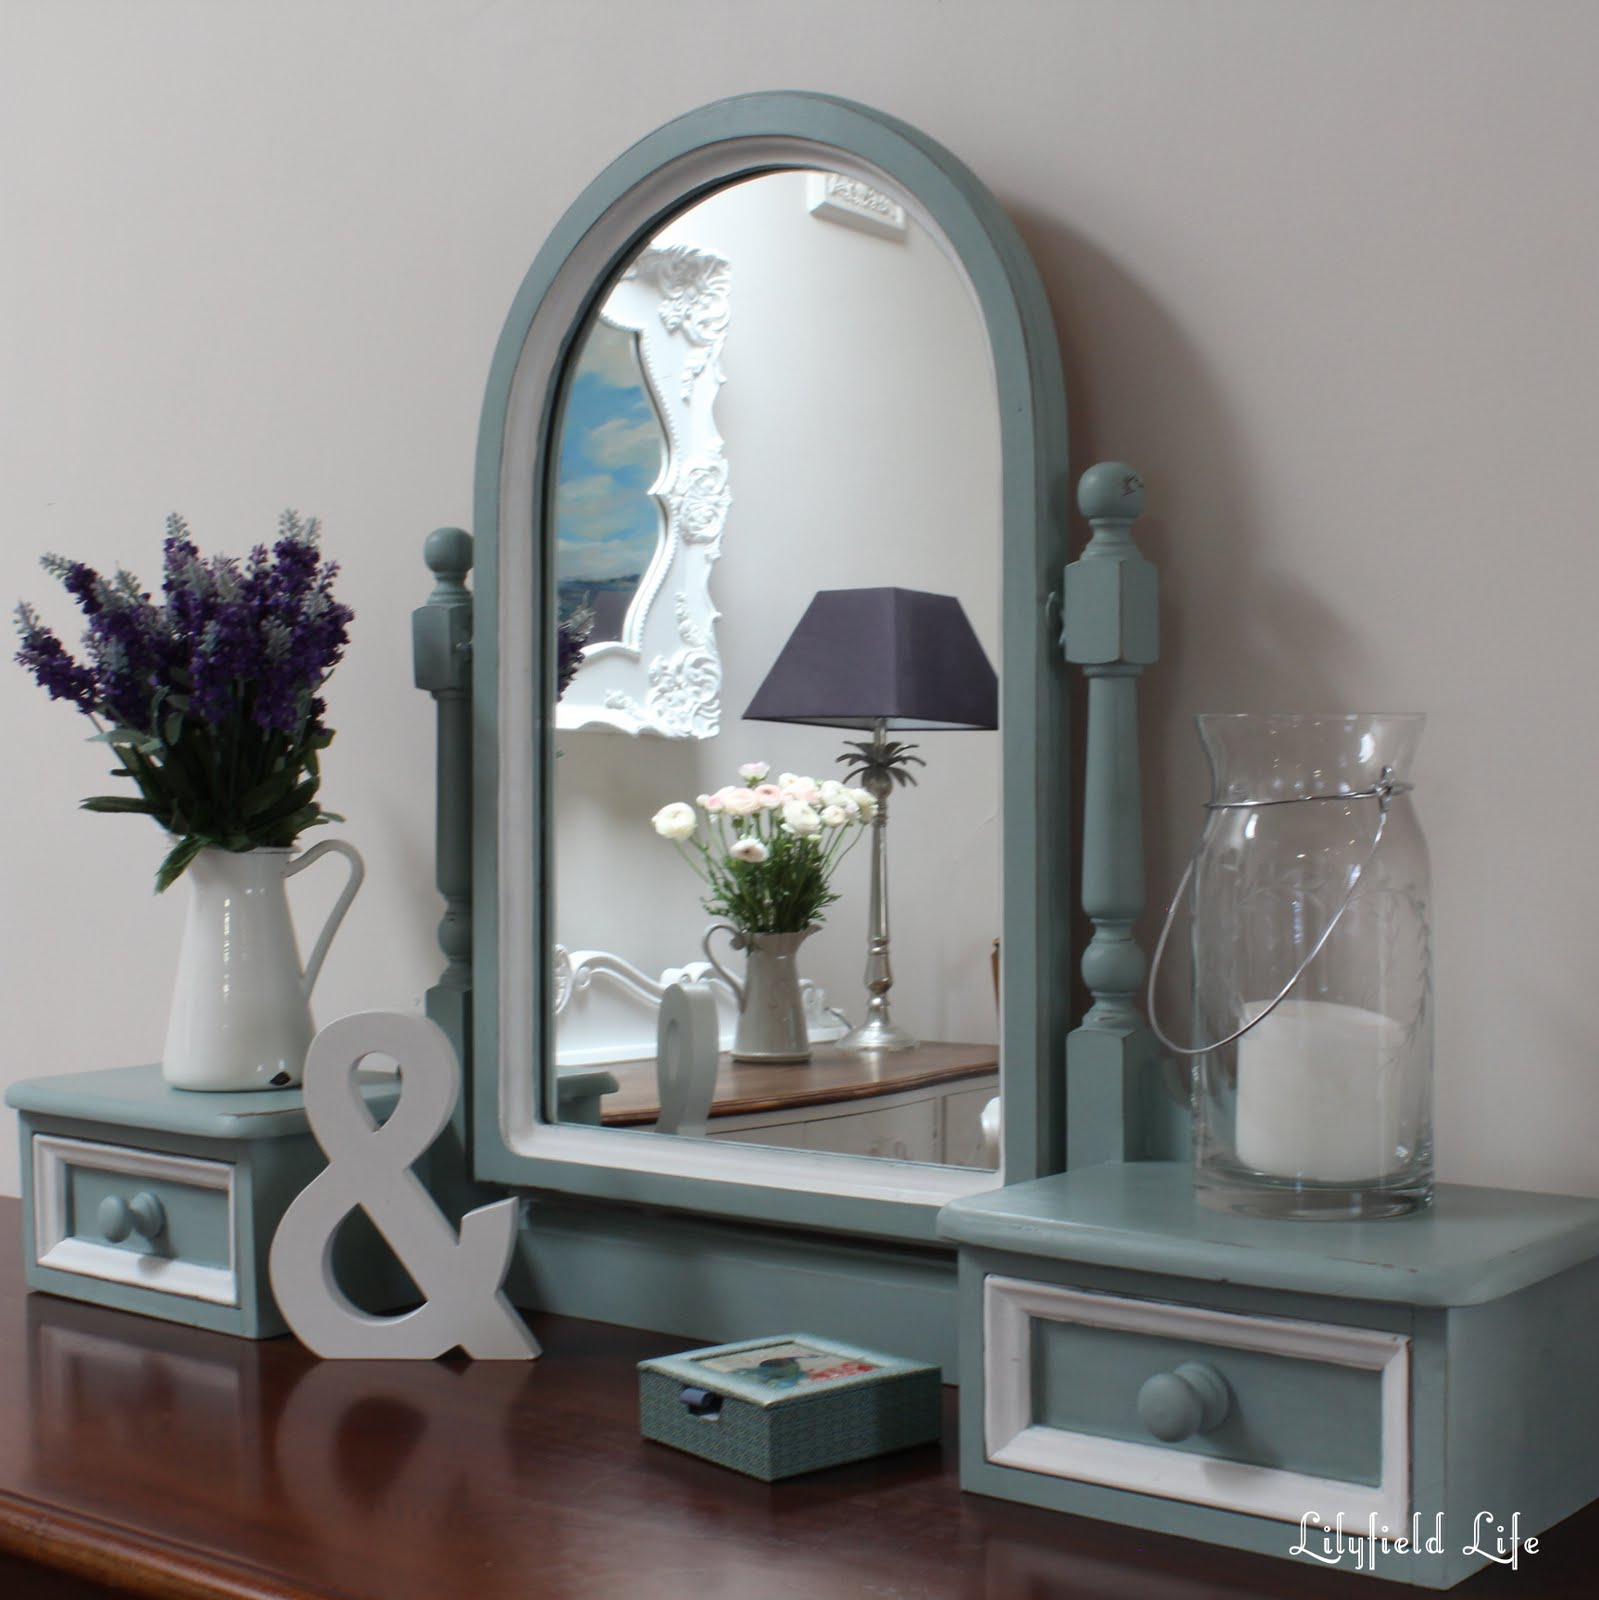 Lilyfield Life Duck Egg Blue Dressing Table Vanity Mirror Set